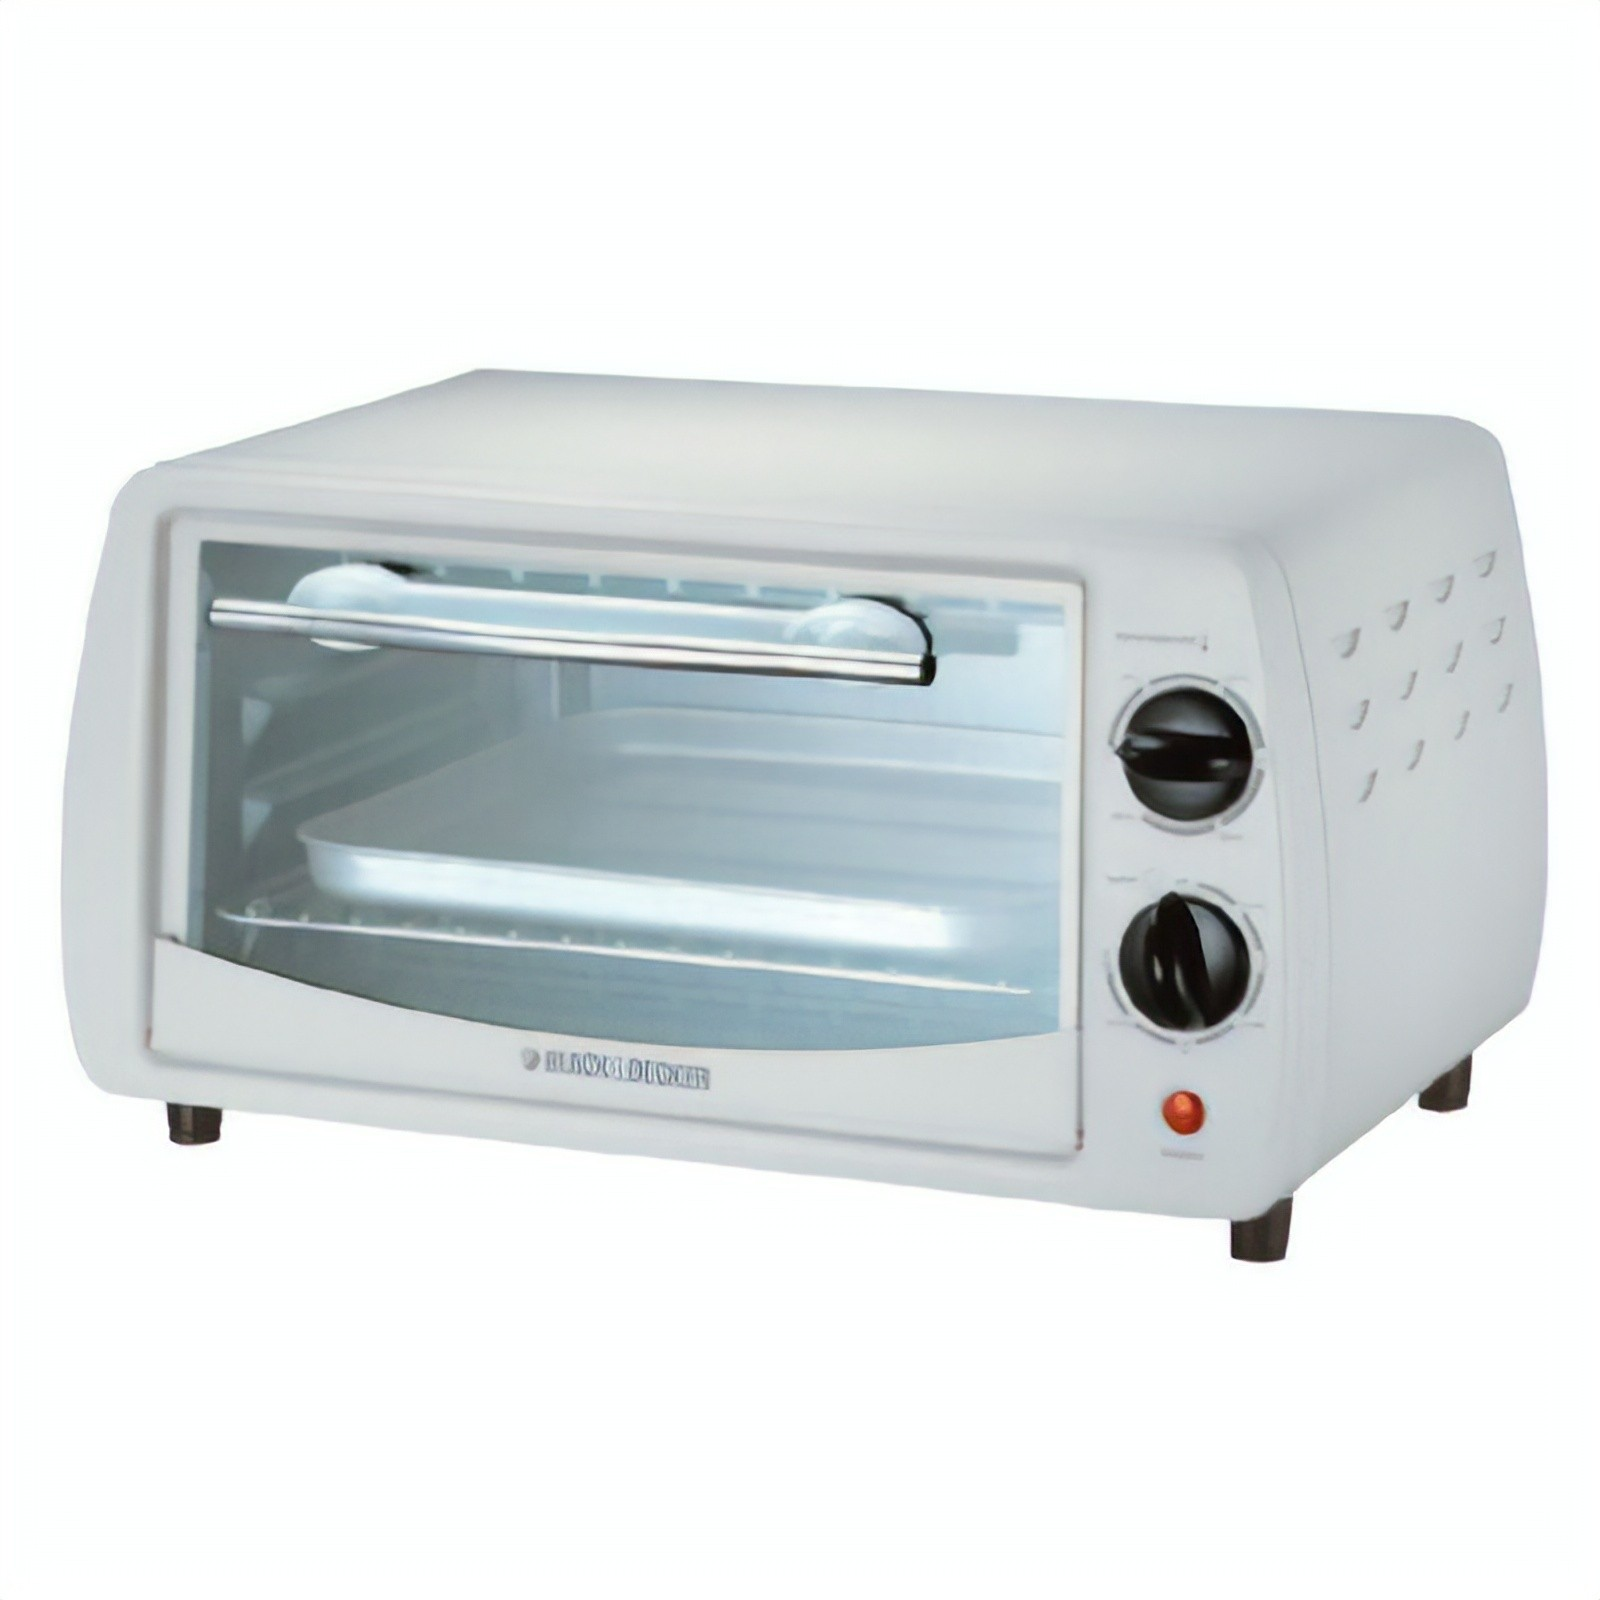 Countertop Oven For Baking Philippines : home appliances brand black and decker 800w 9 litre toaster oven ...